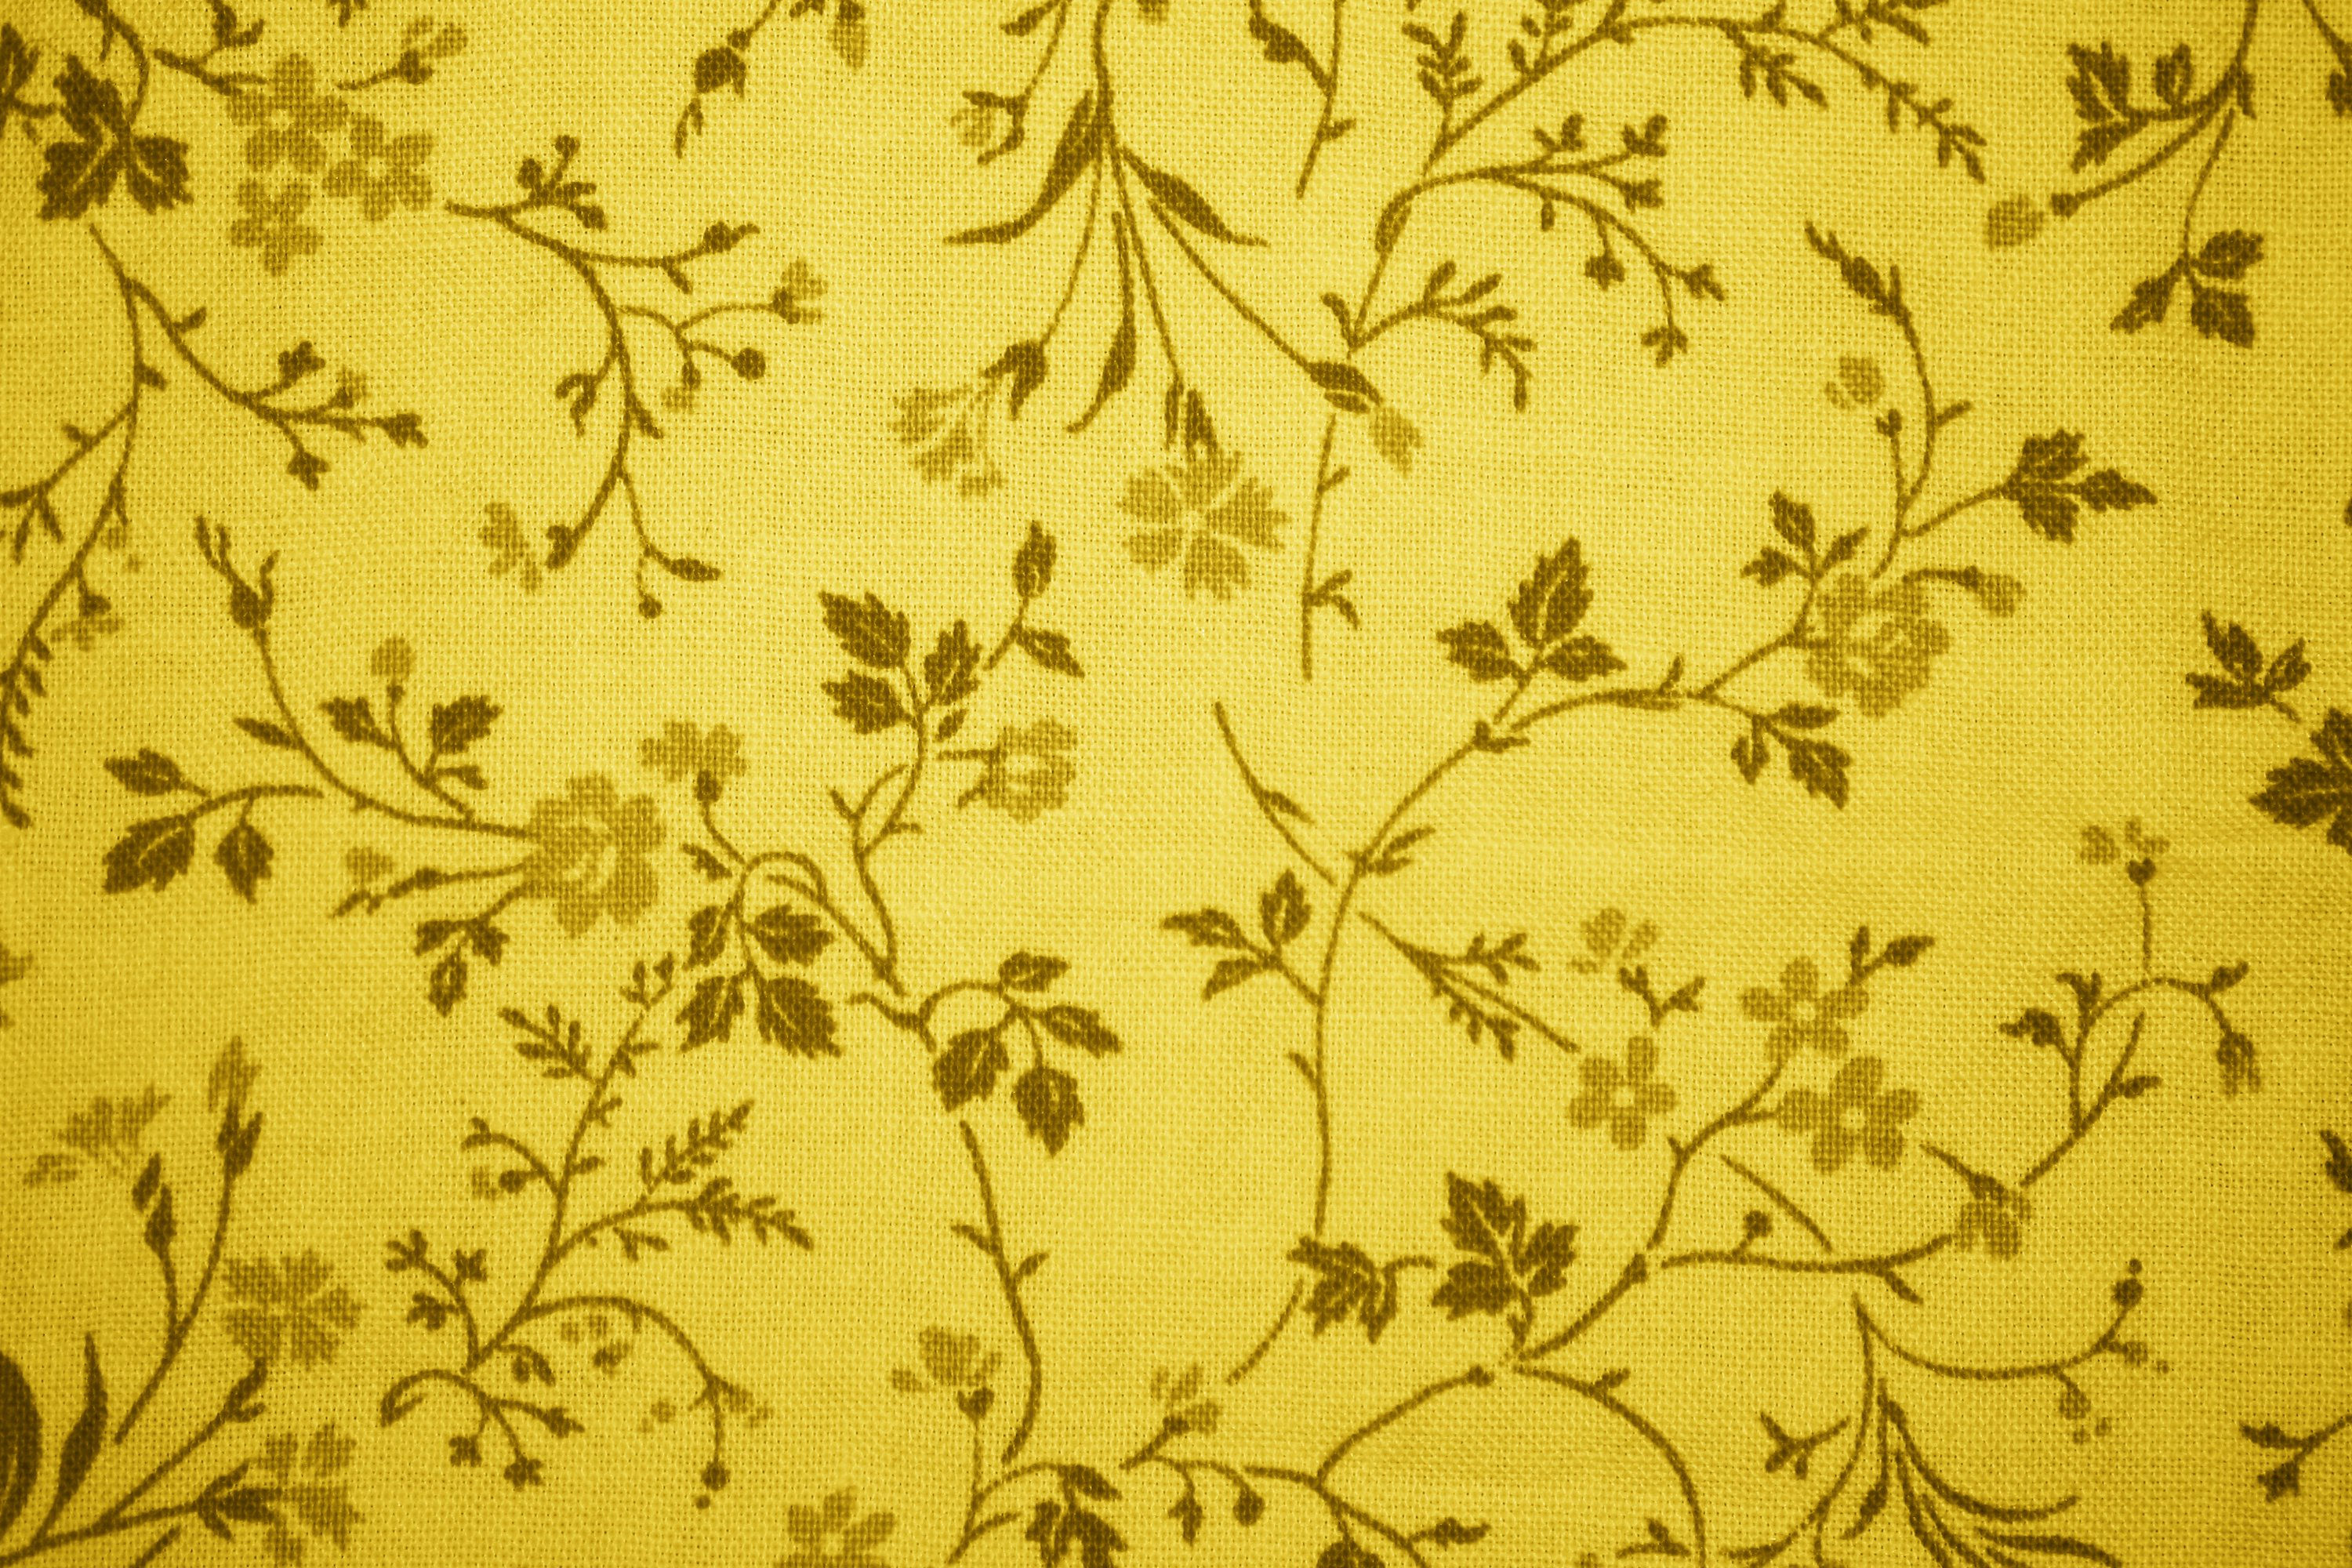 Gold Floral Print Fabric Texture Picture Photograph Photos 3000x2000